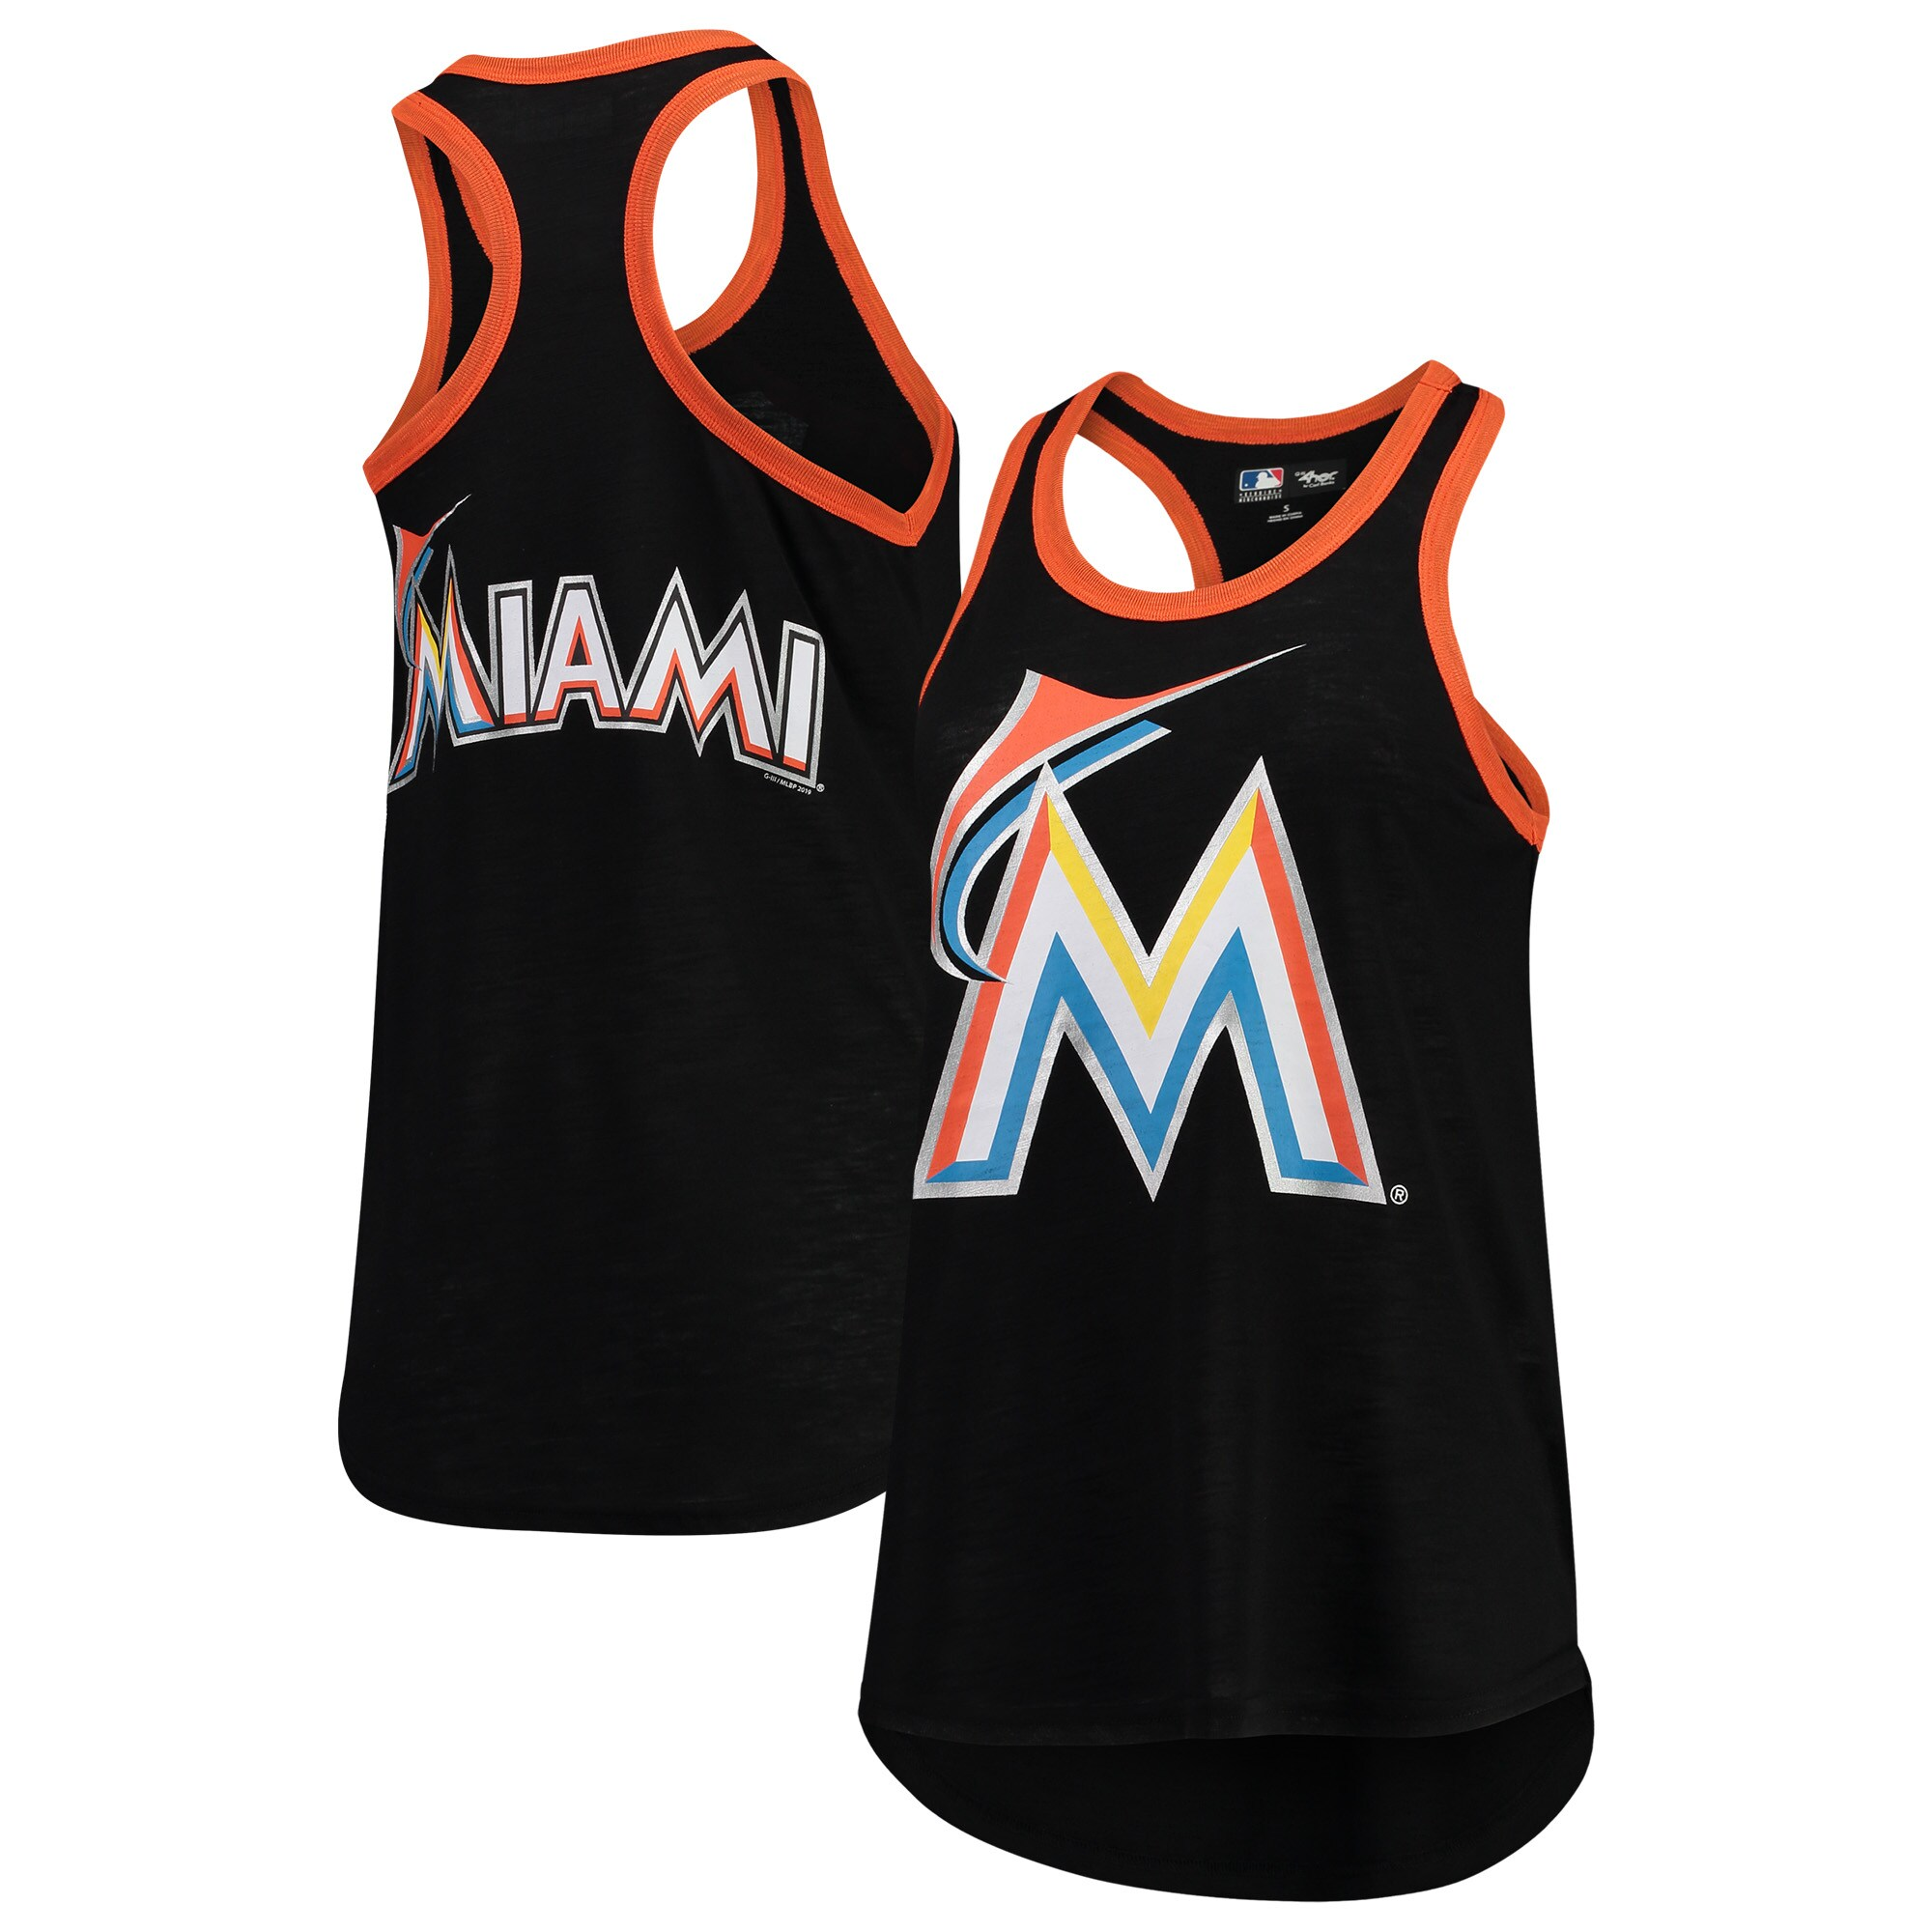 Miami Marlins G-III 4Her by Carl Banks Women's Team Color Tater Tank Top - Black